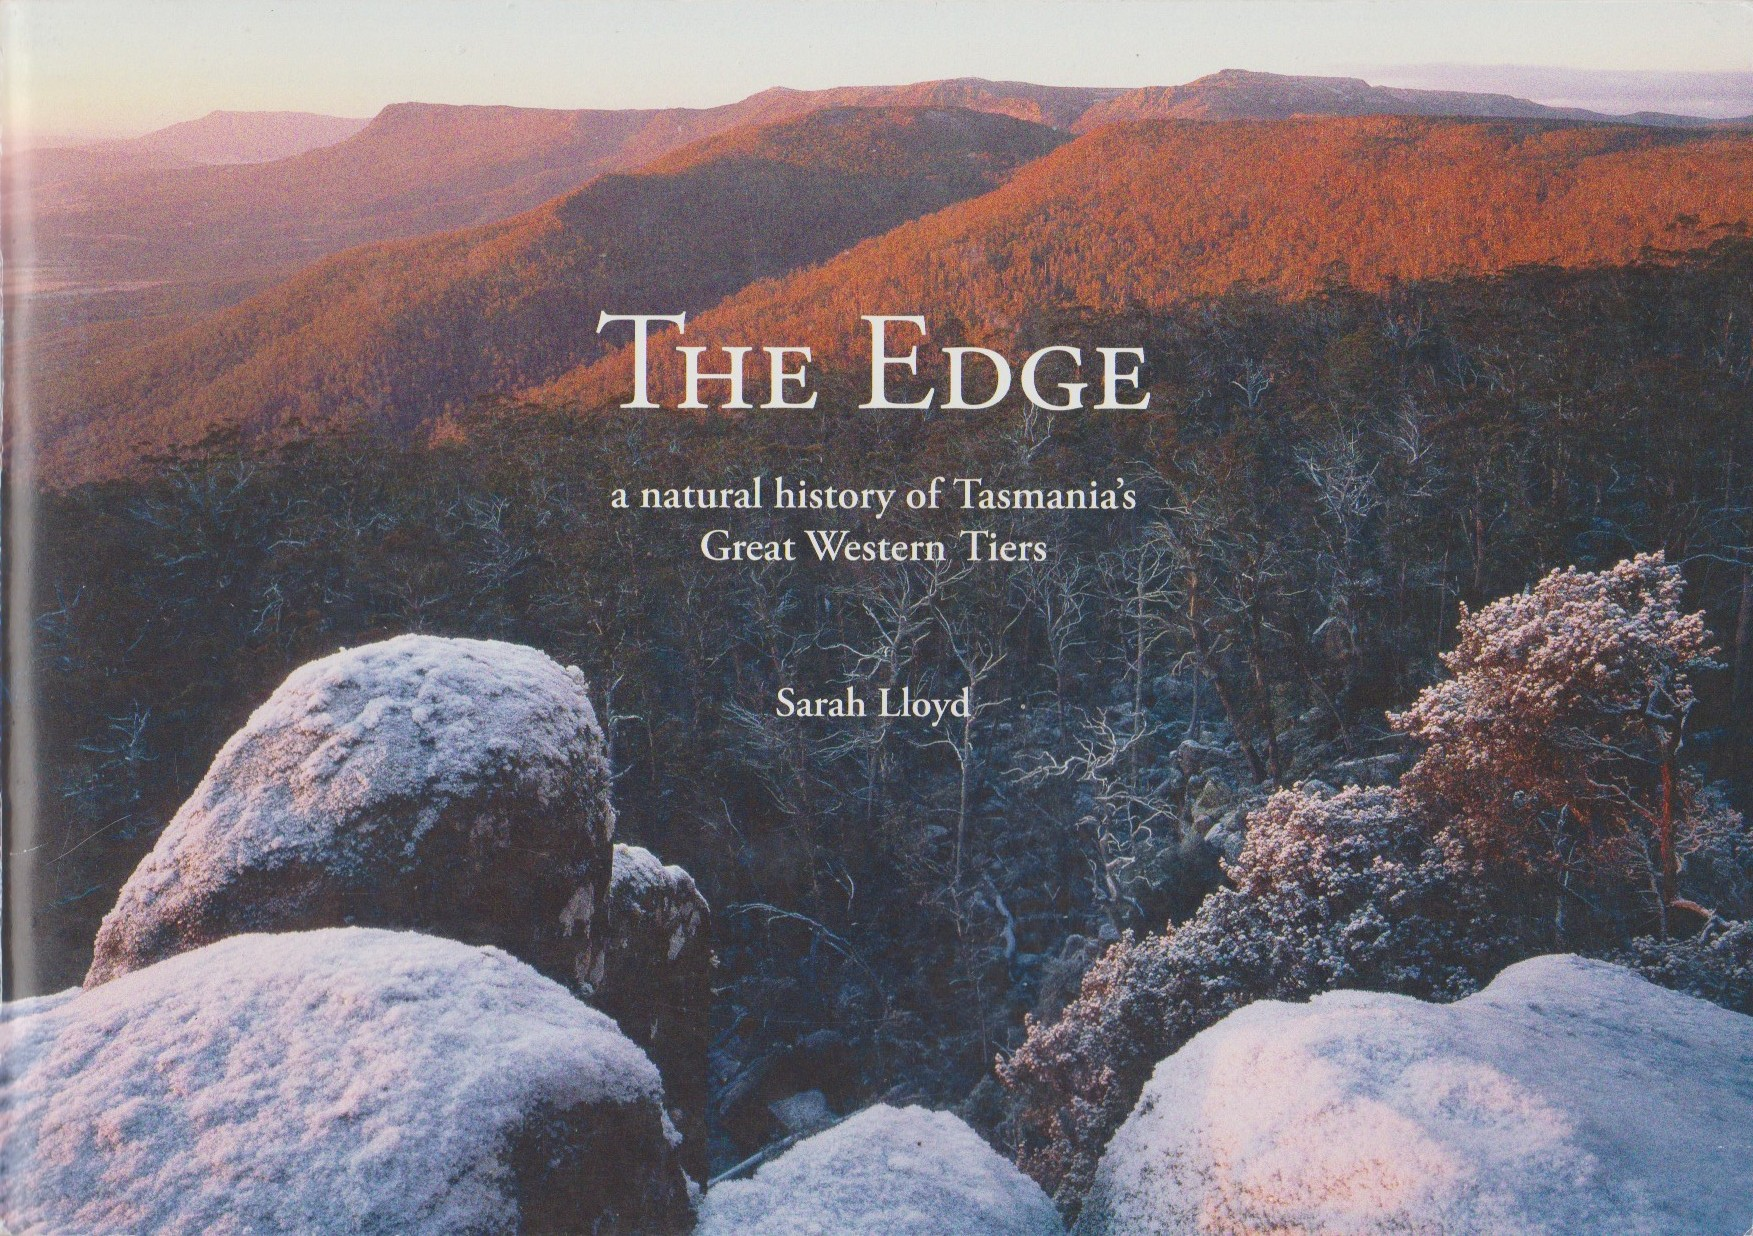 The Edge - a natural history of Tasmania's Great Western Tiers